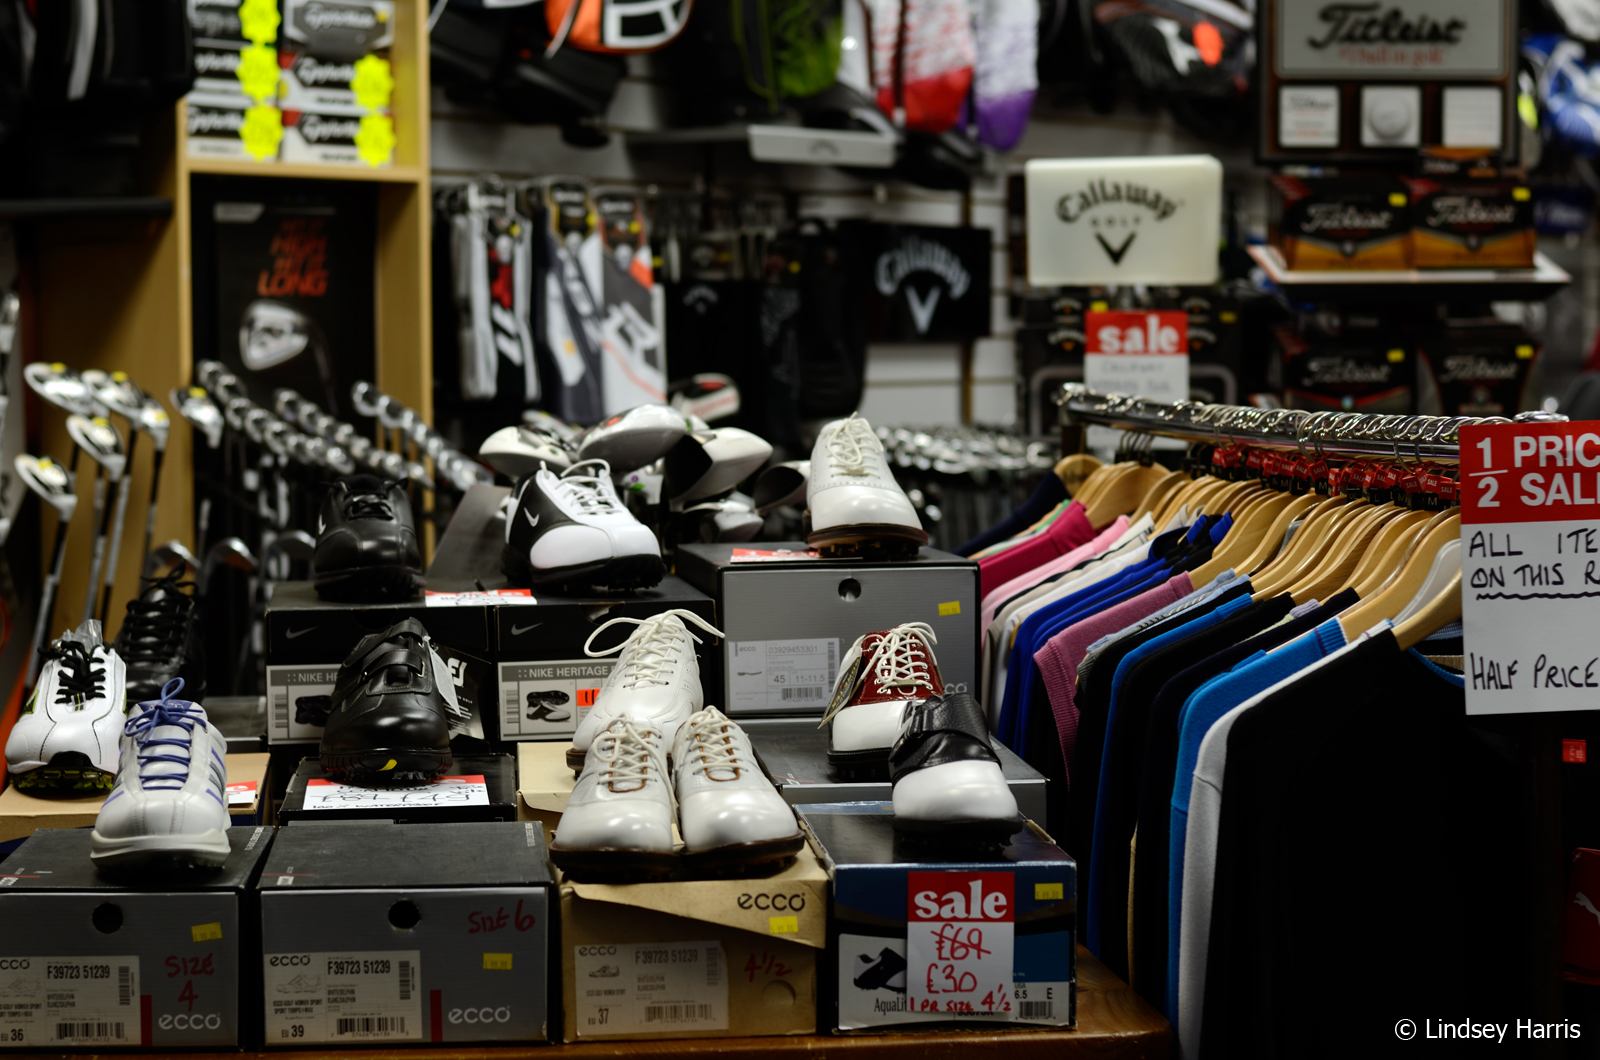 Parkstone Golf Shop, Lower Parkstone,. Poole, Dorset.